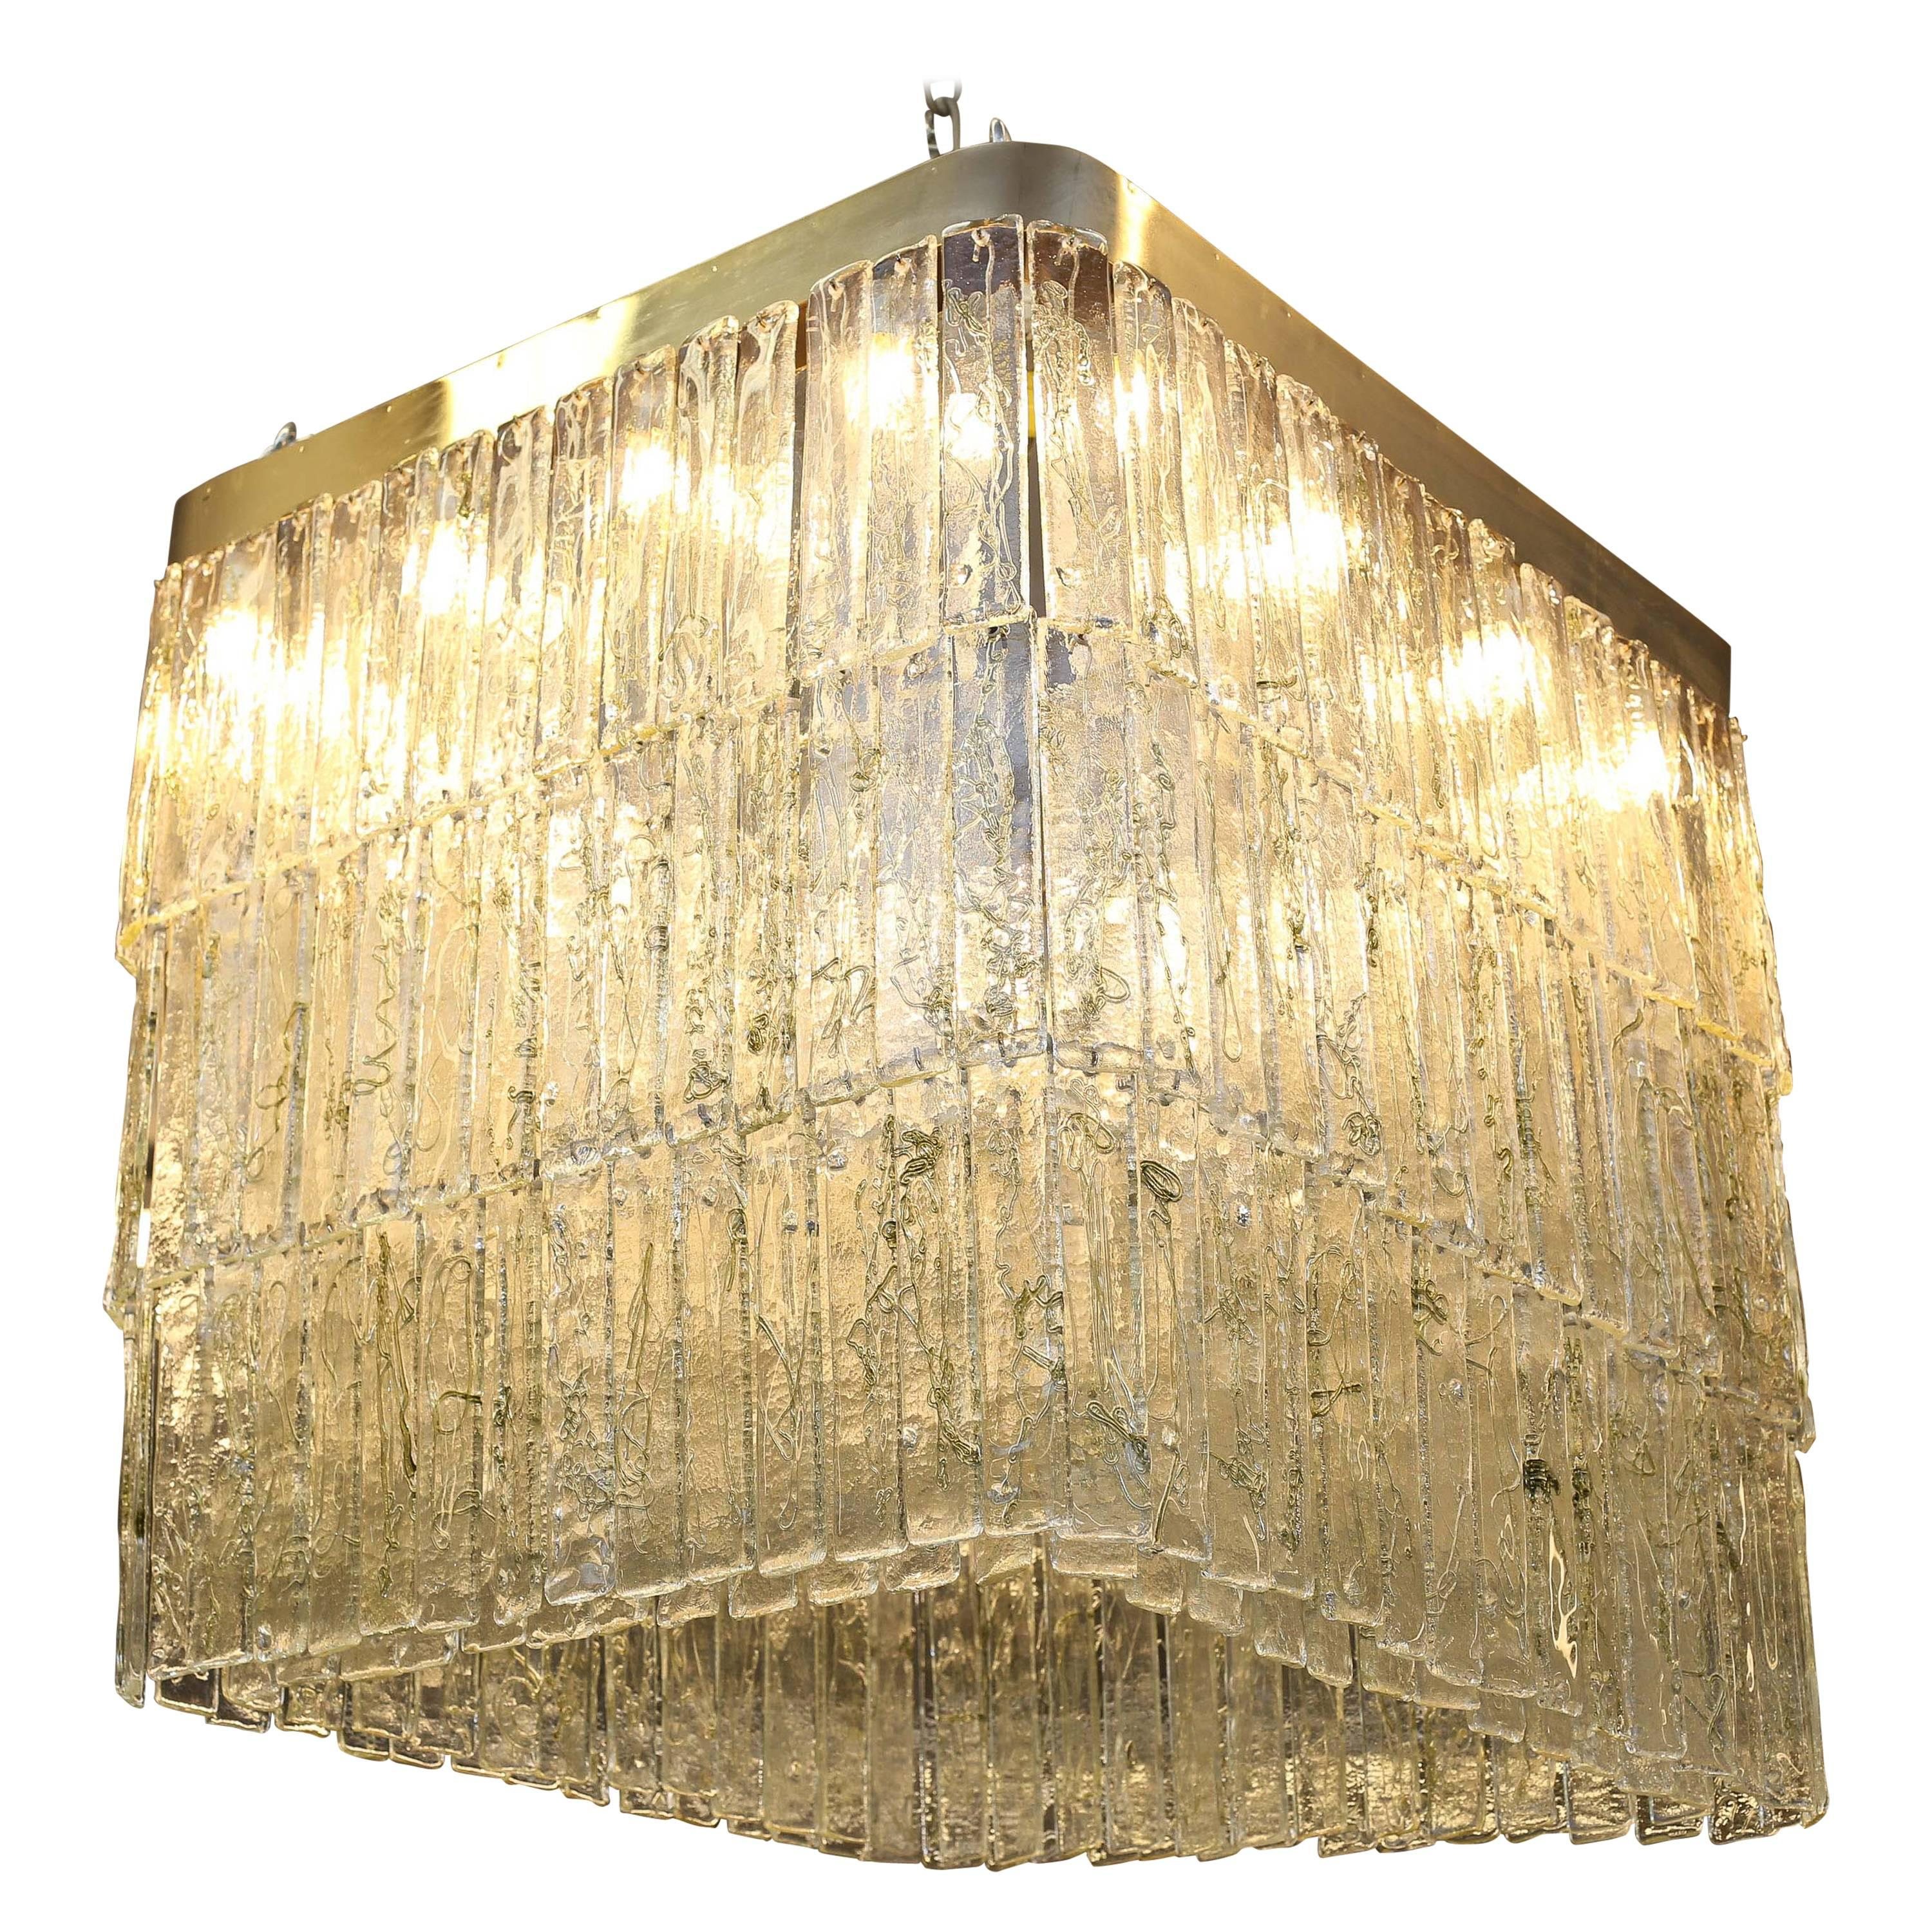 Grand Mid-Century Murano Chandelier Made by Mazzega